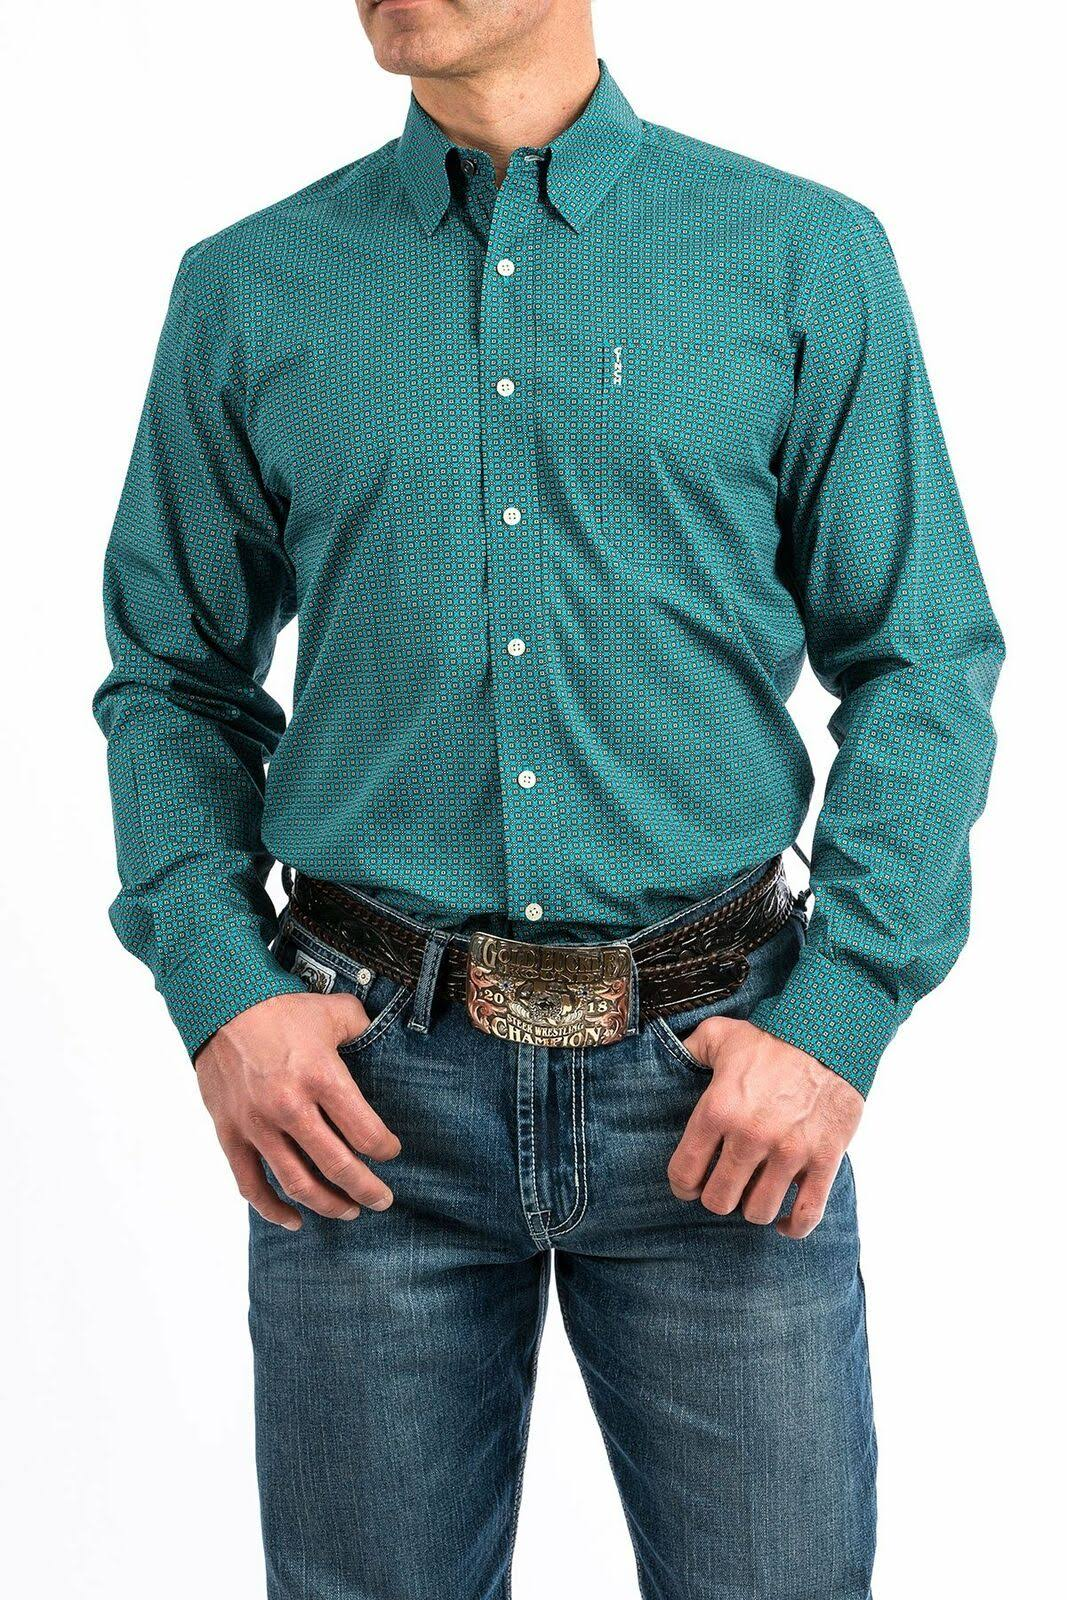 Cinch Modern Fit Men's Turquoise Geo Print Long Sleeve Western Shirt